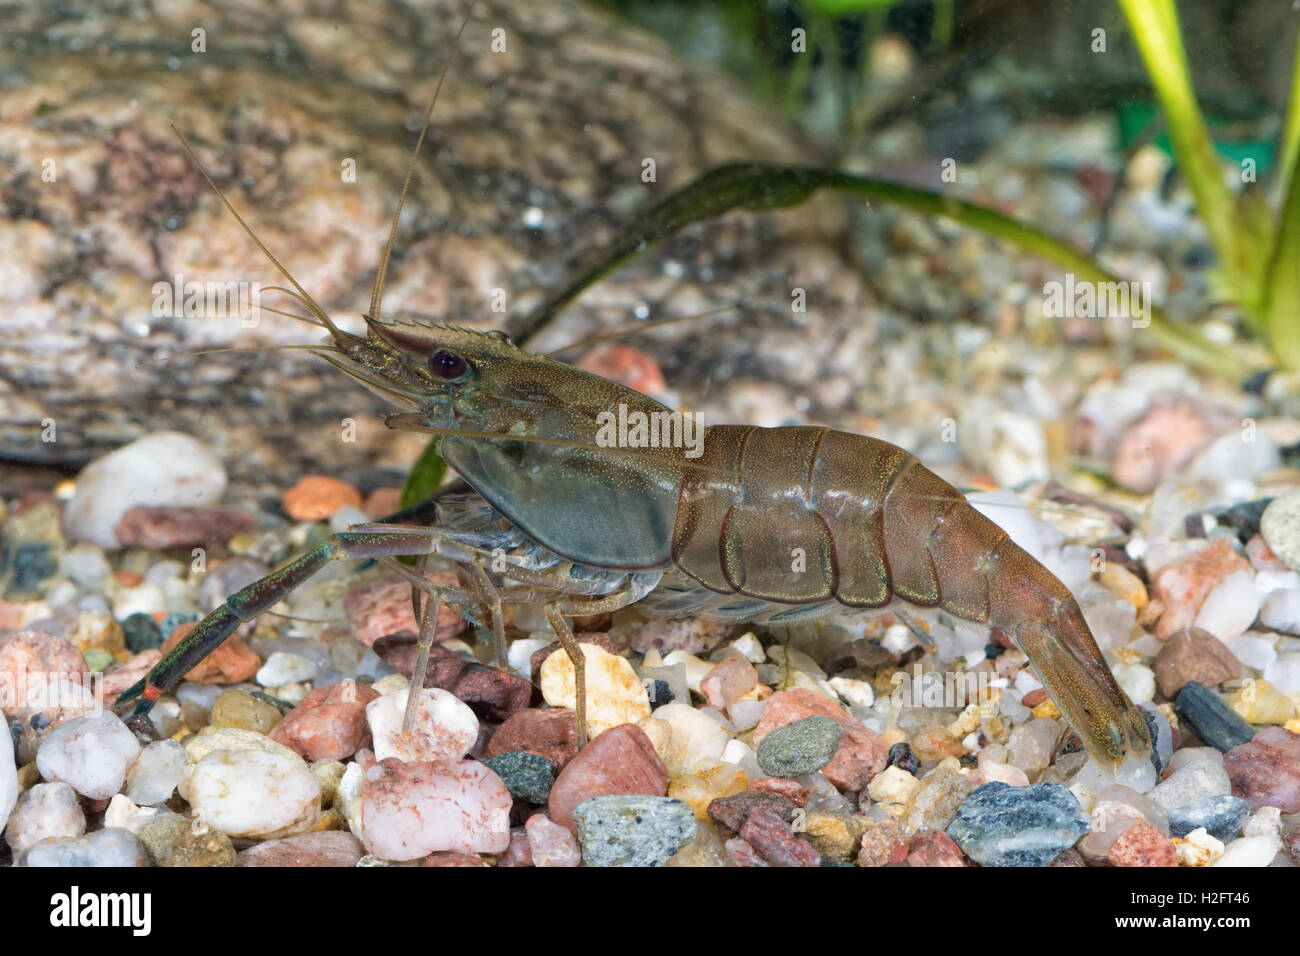 Freshwater Prawns Images - Reverse Search